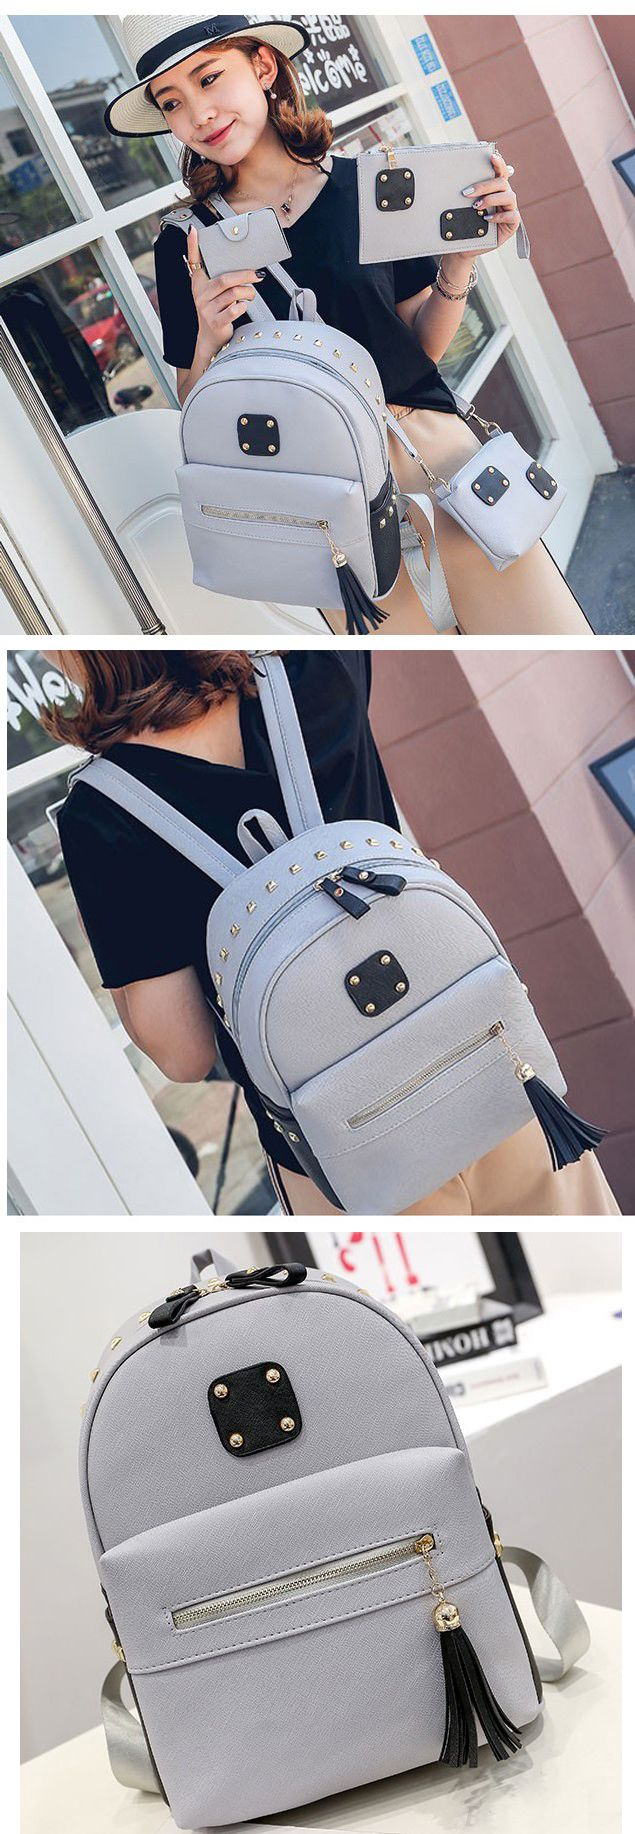 New Arrival Large School Backpack Fashion PU Rivets Patch Tassel Backpack backpacks for girls, pink backpack, mini backpack, cool backpacks, backpacks for women, leather backpack, travel backpack,